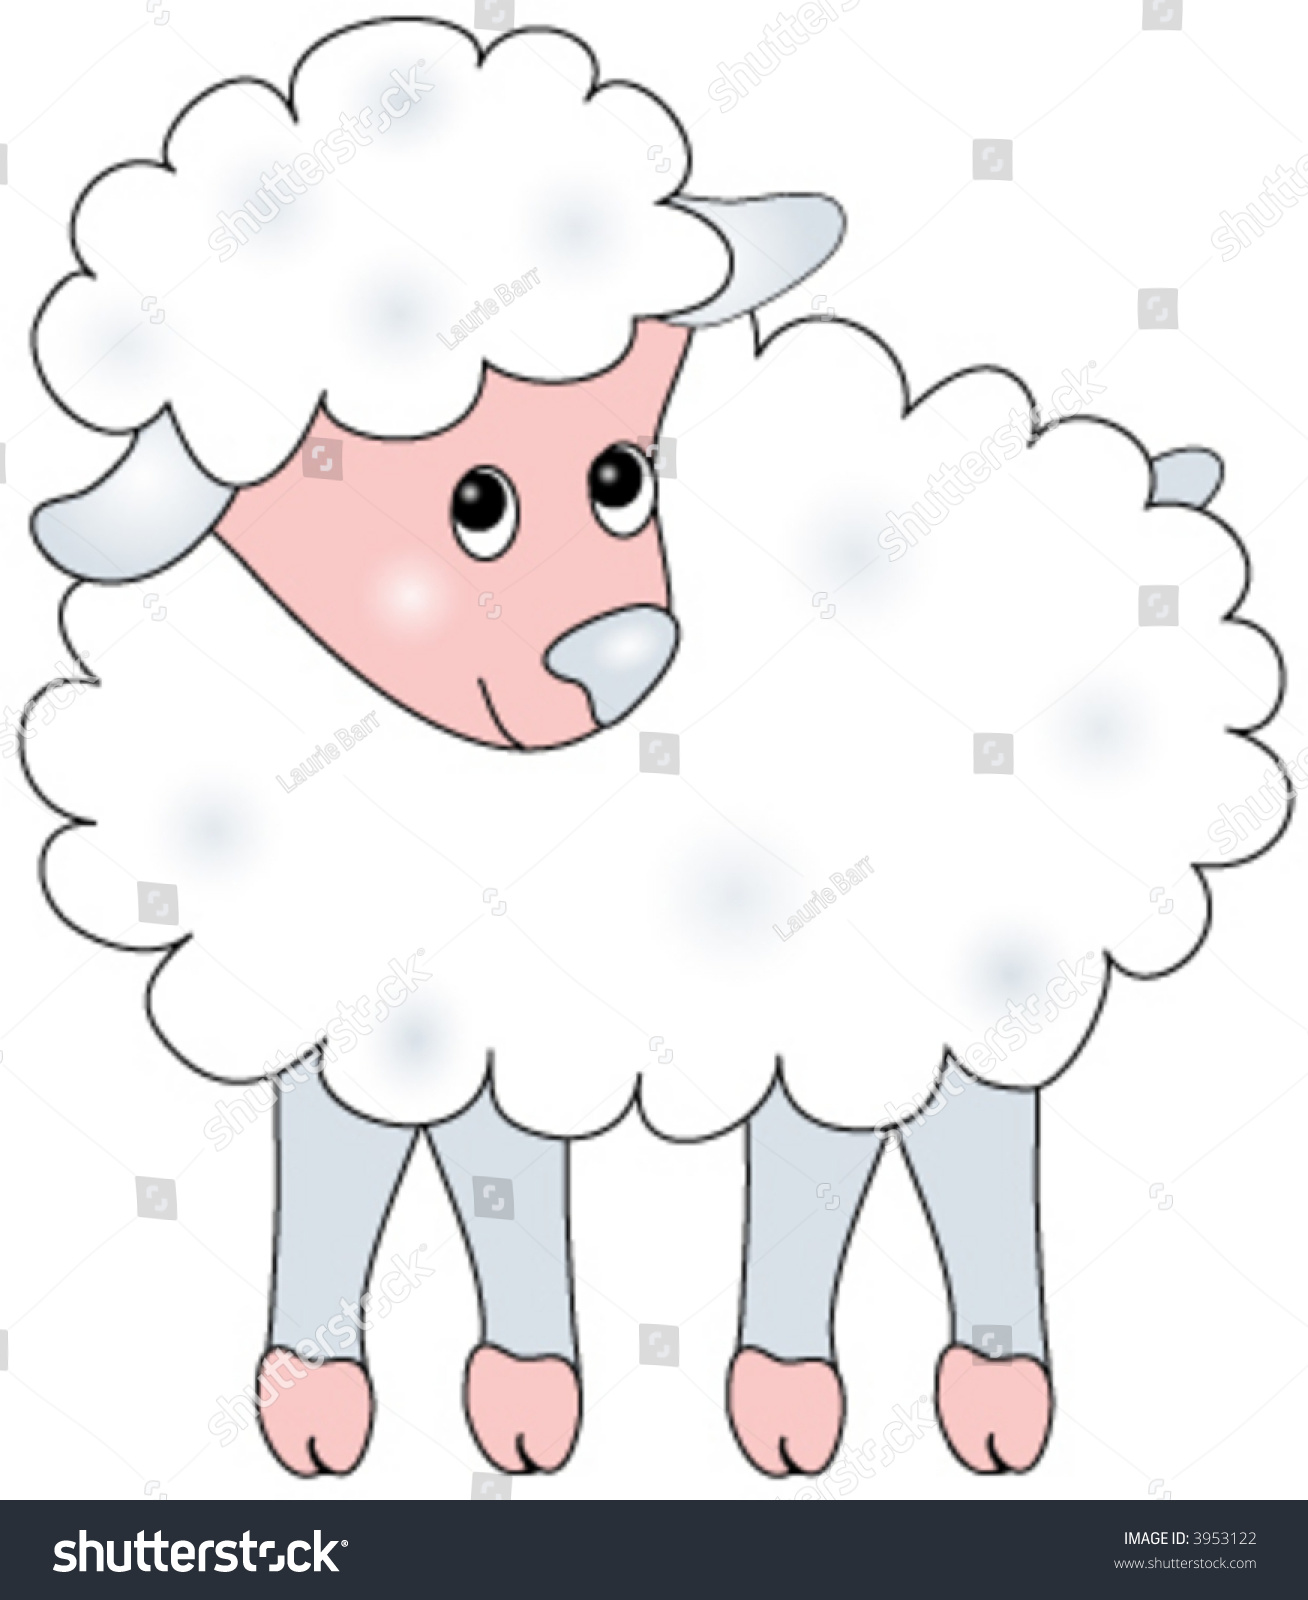 Baby Lamb Drawing Vector Illustration Baby Sheep Stock Vector 3953122